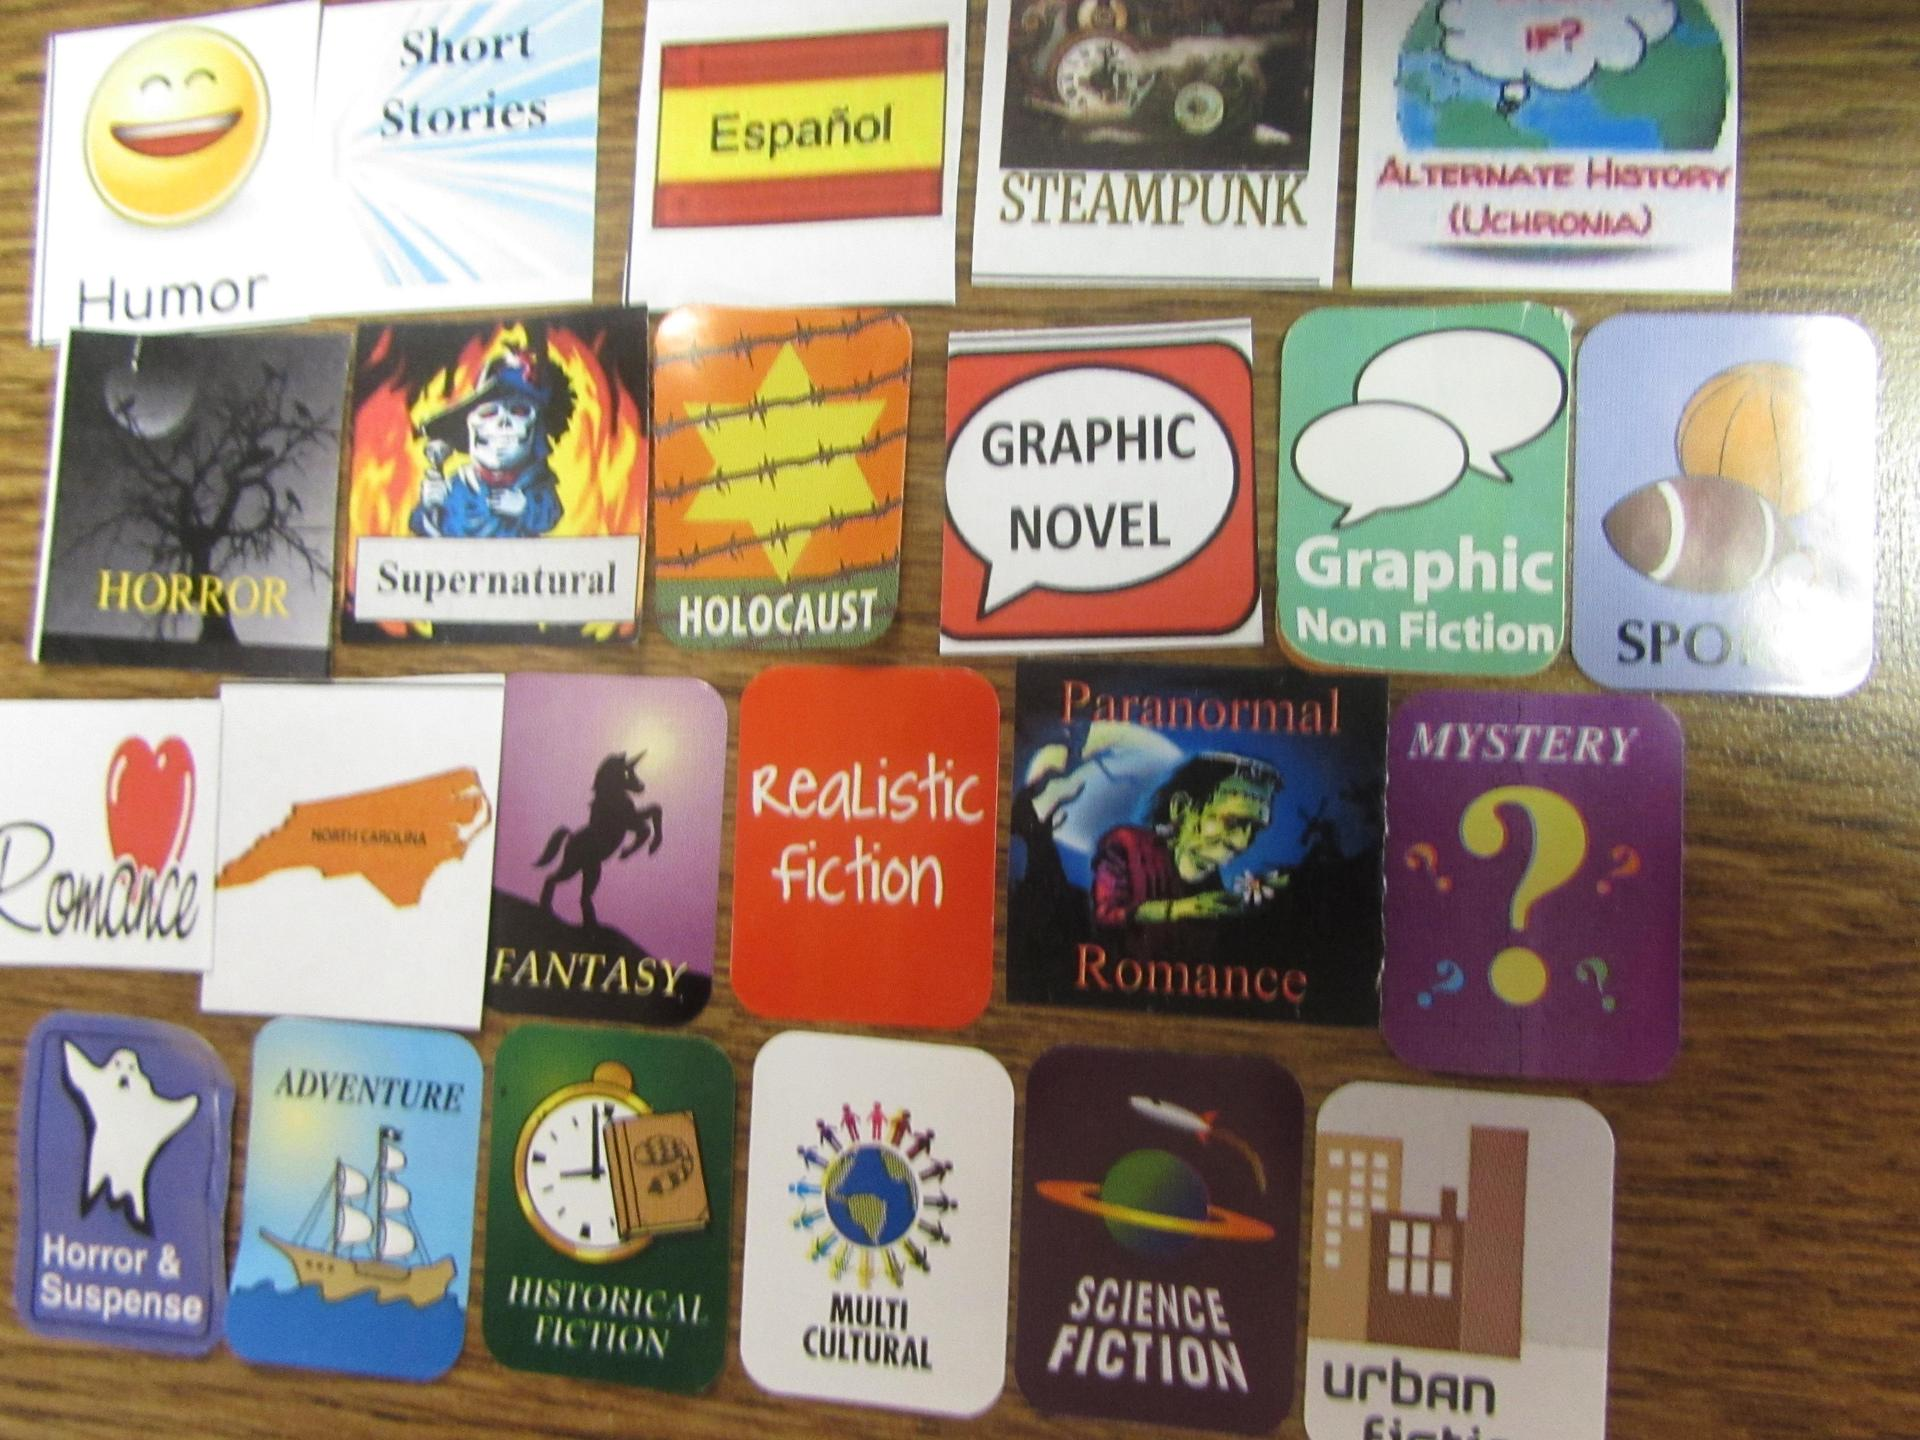 genre labels used on book spines